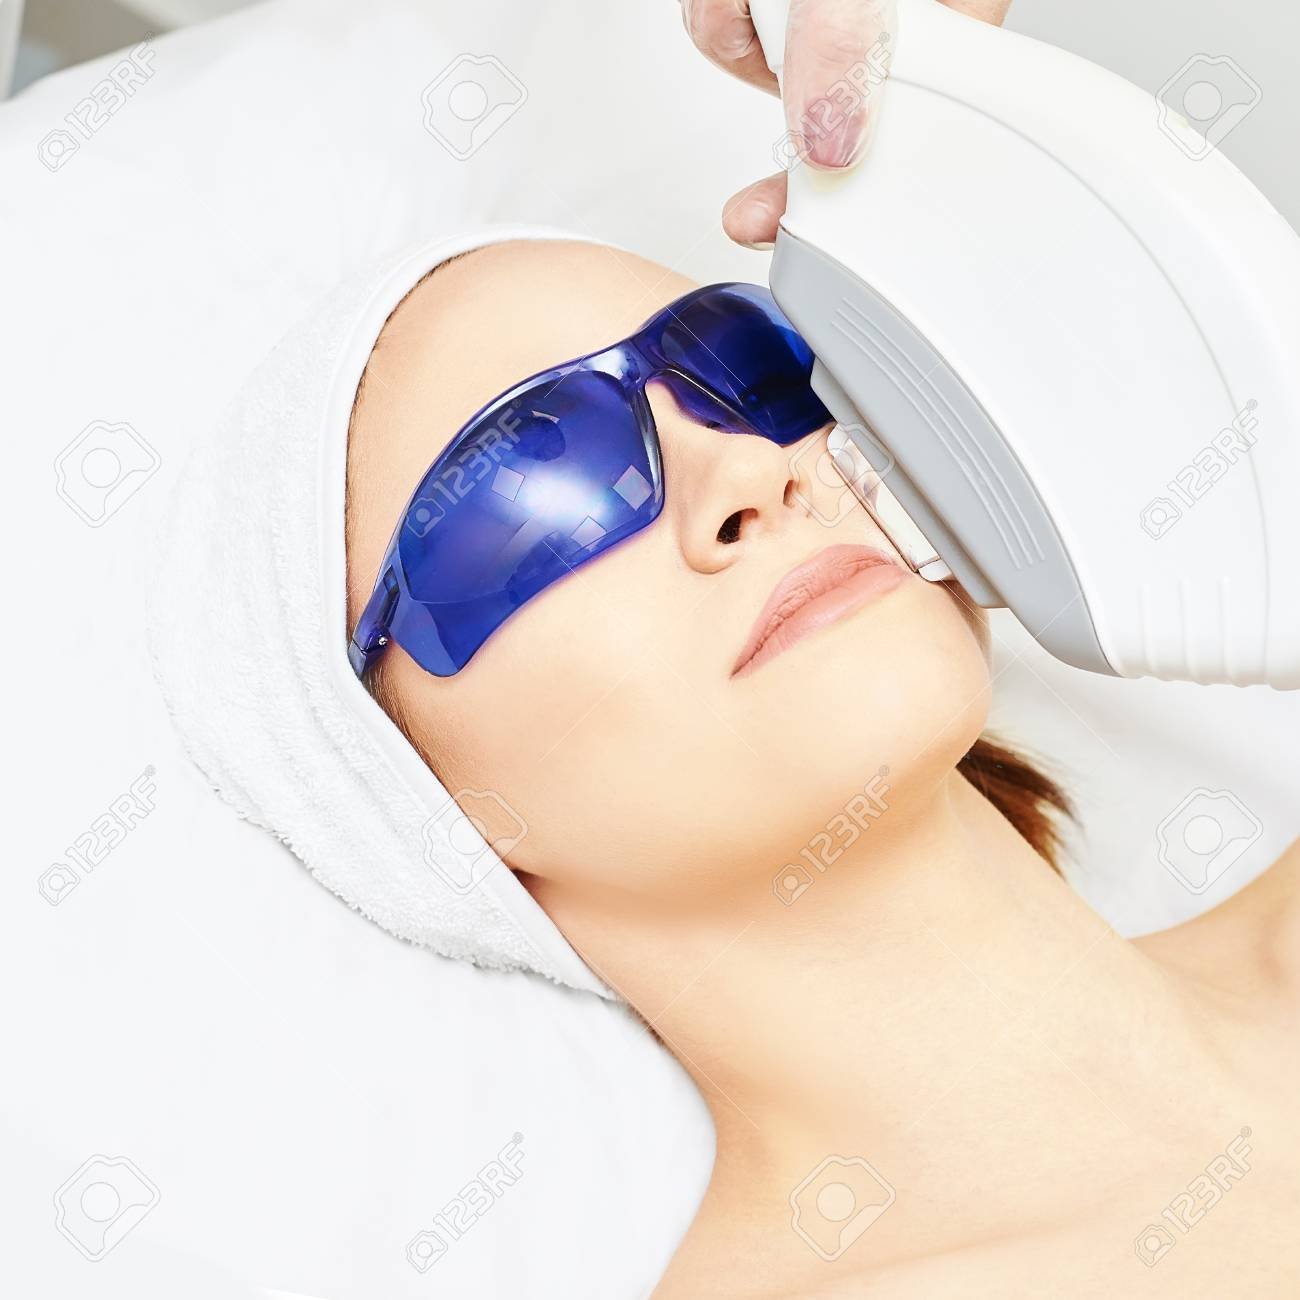 Laser facial hair removal  Cosmetology ipl device  Woman body